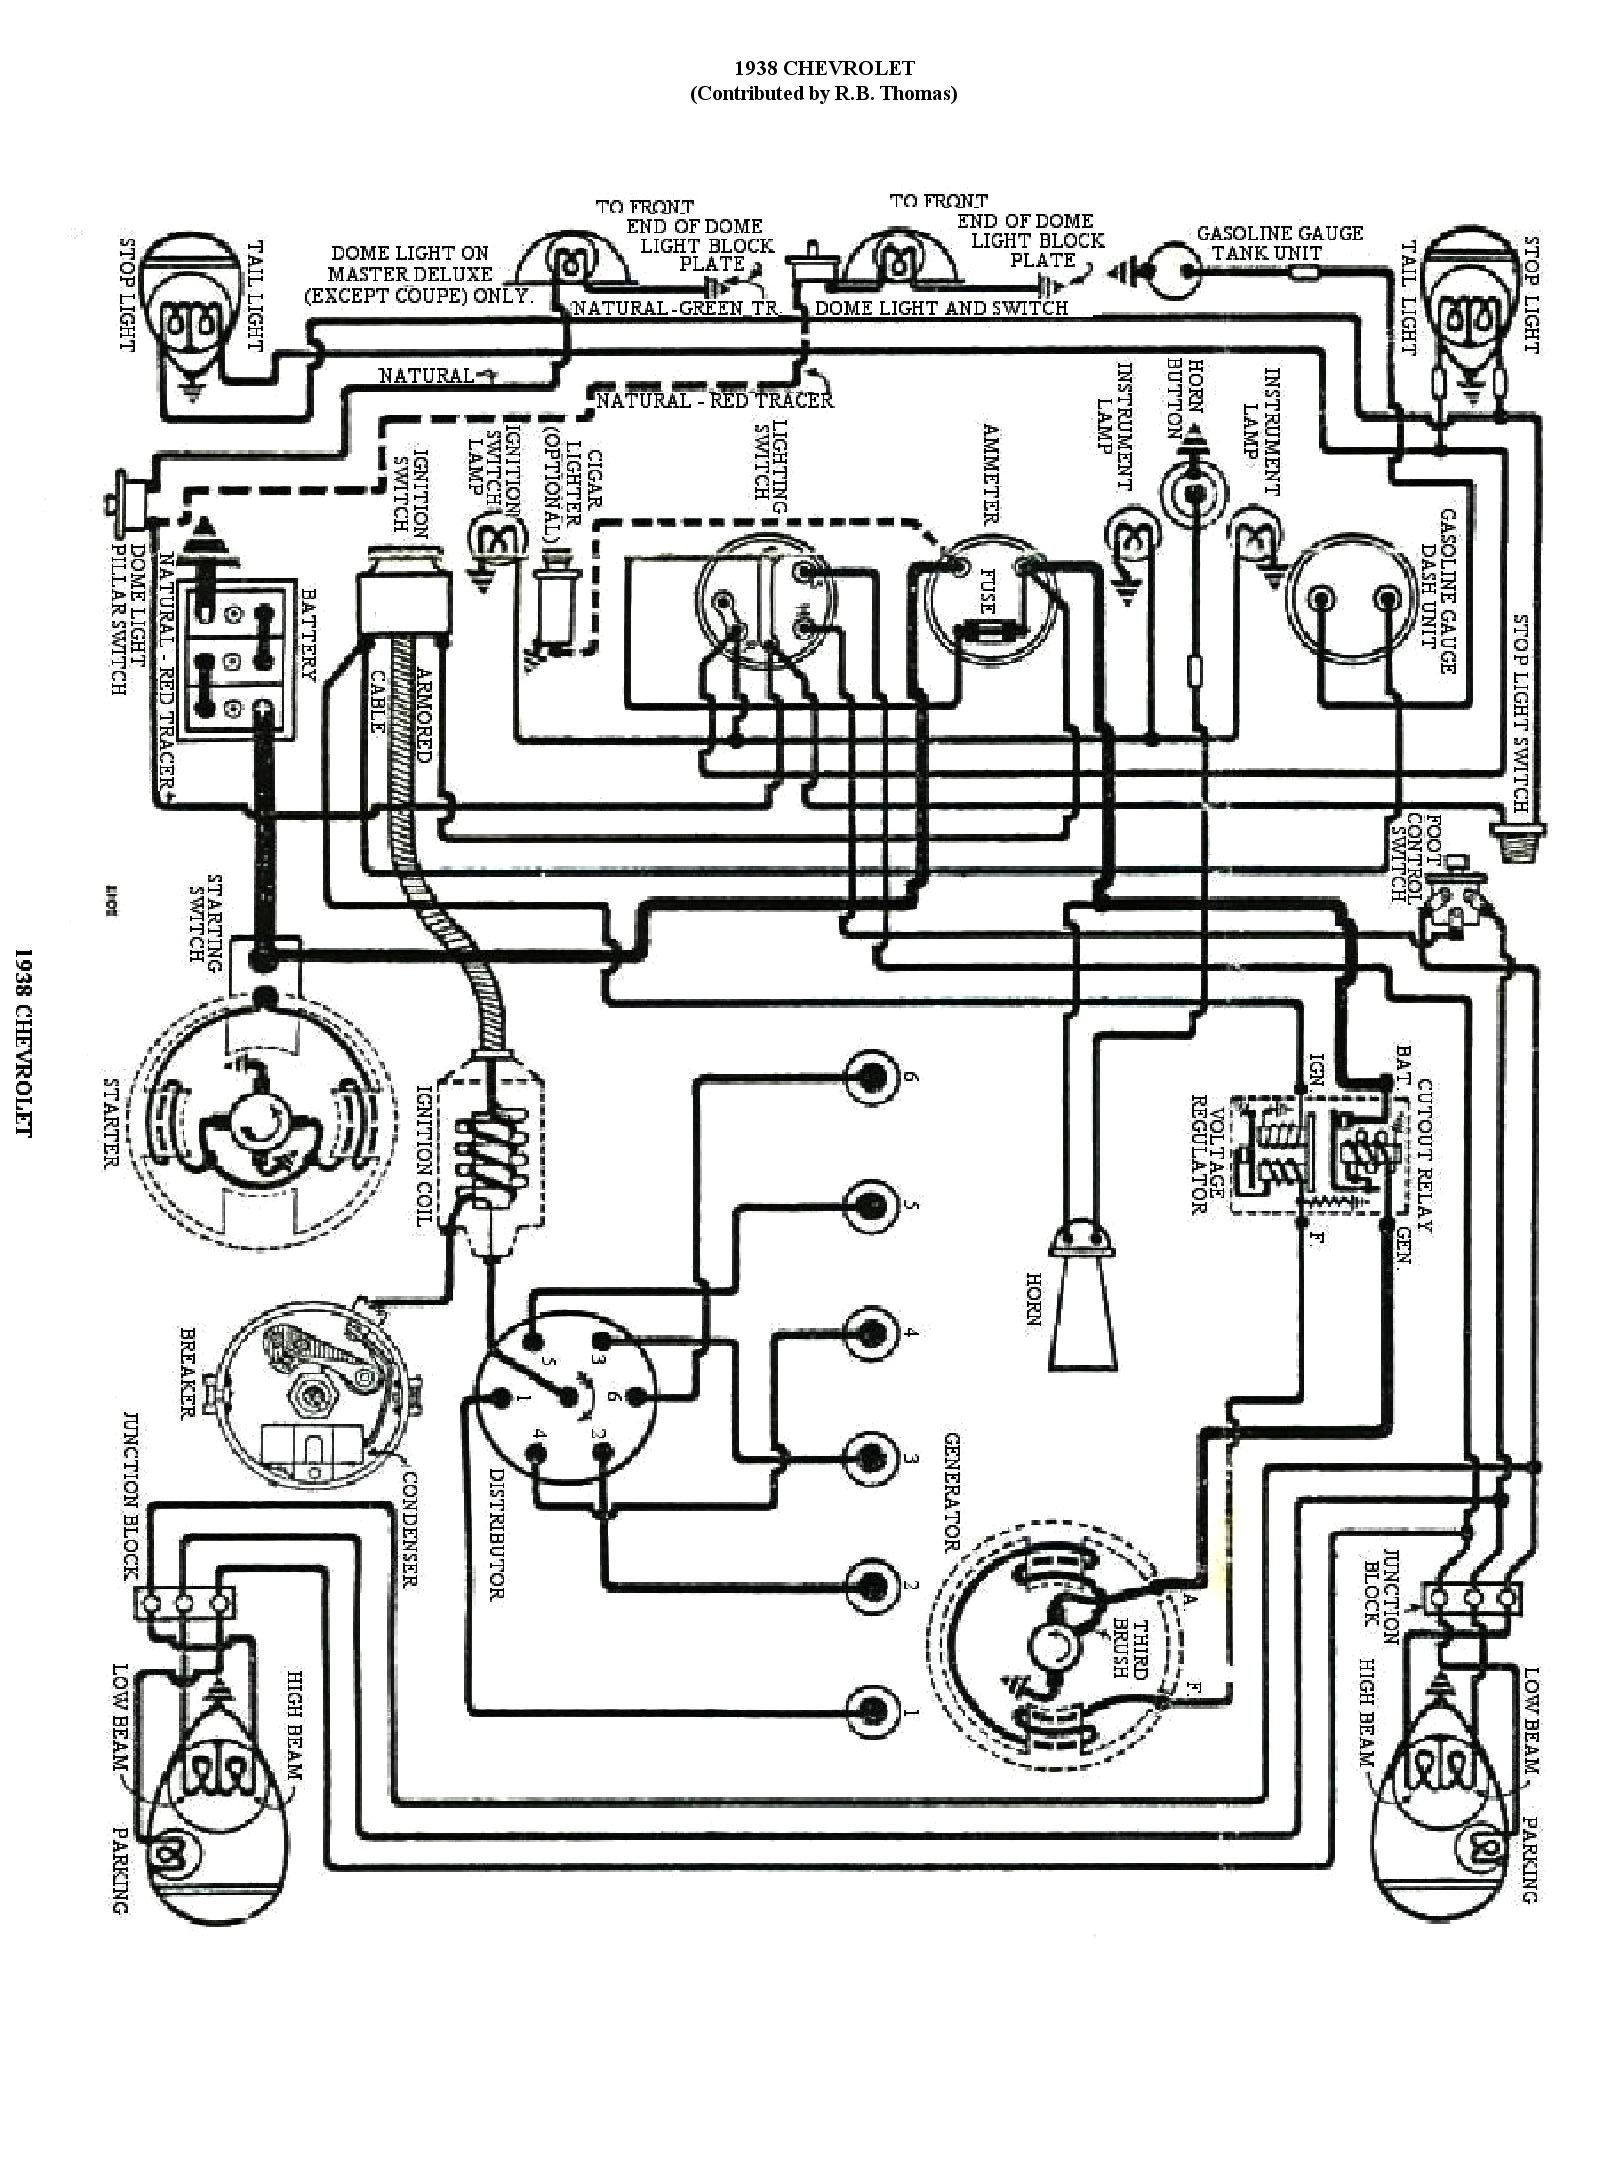 38wiring chevy wiring diagrams 6 volt universal wiring harness at highcare.asia